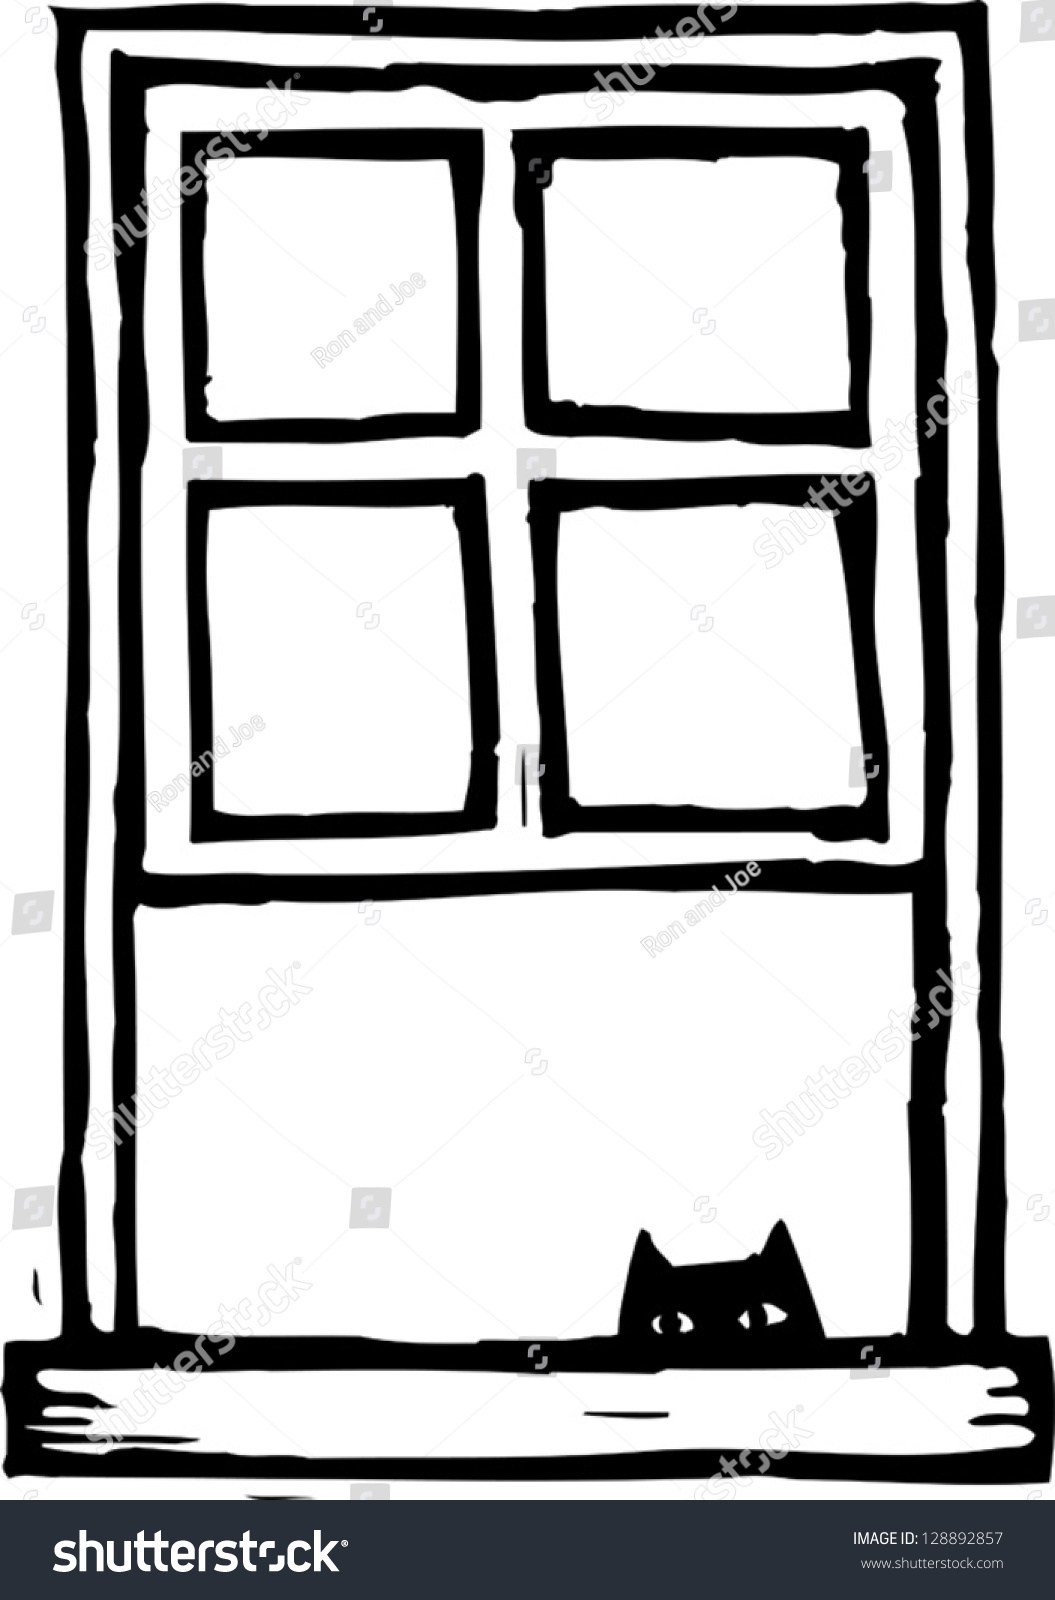 Black and white window clipart graphic transparent library Clipart black and white window 6 » Clipart Portal graphic transparent library